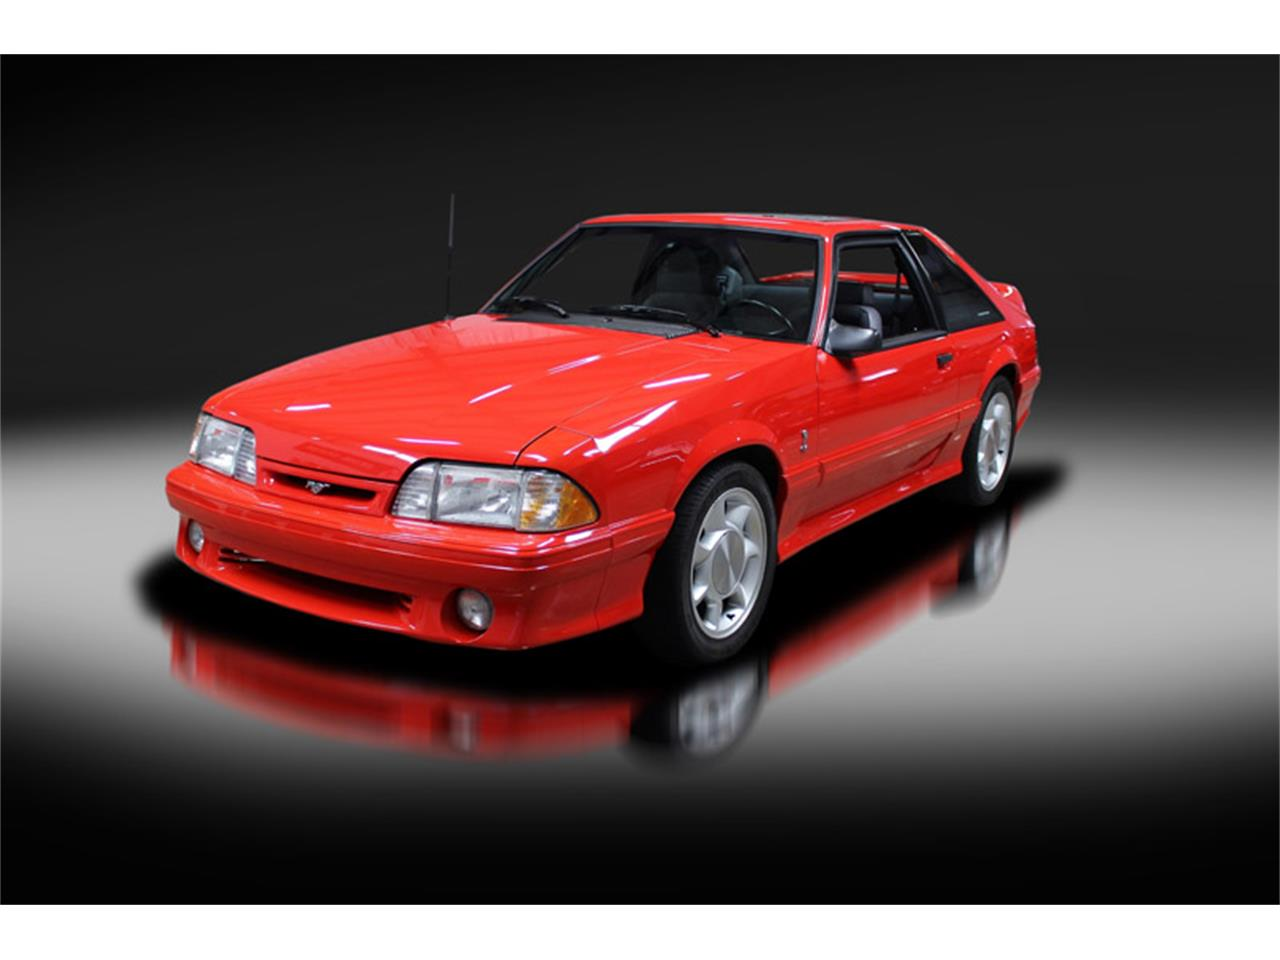 Large picture of 93 ford mustang cobra located in massachusetts 39900 00 ovcj